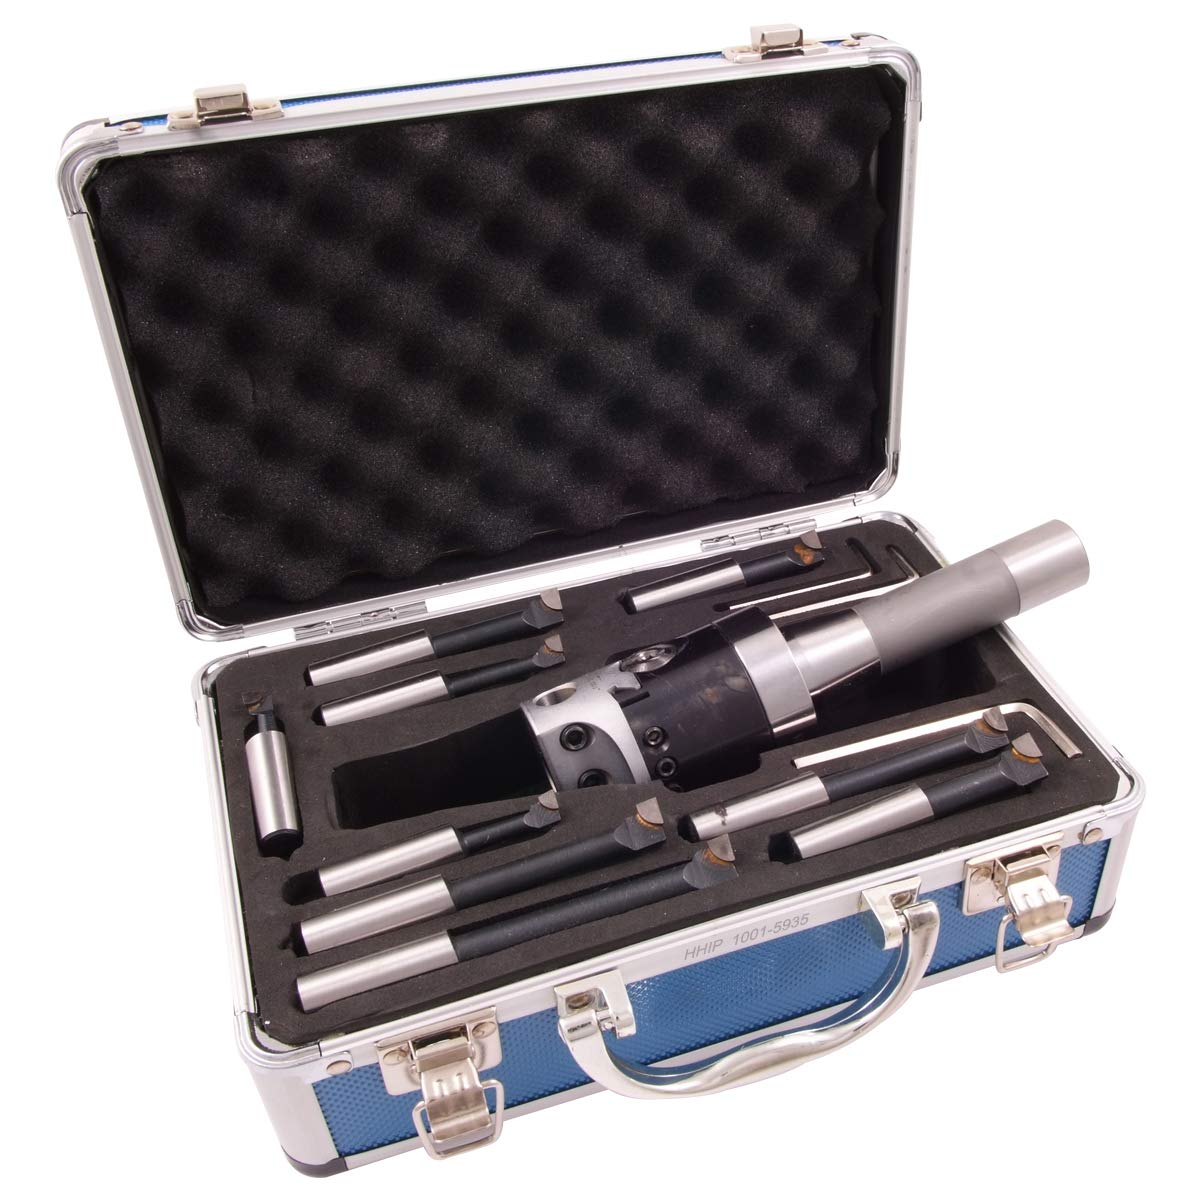 HHIP 1001-5935 R8 Head Boring Tool Set 2